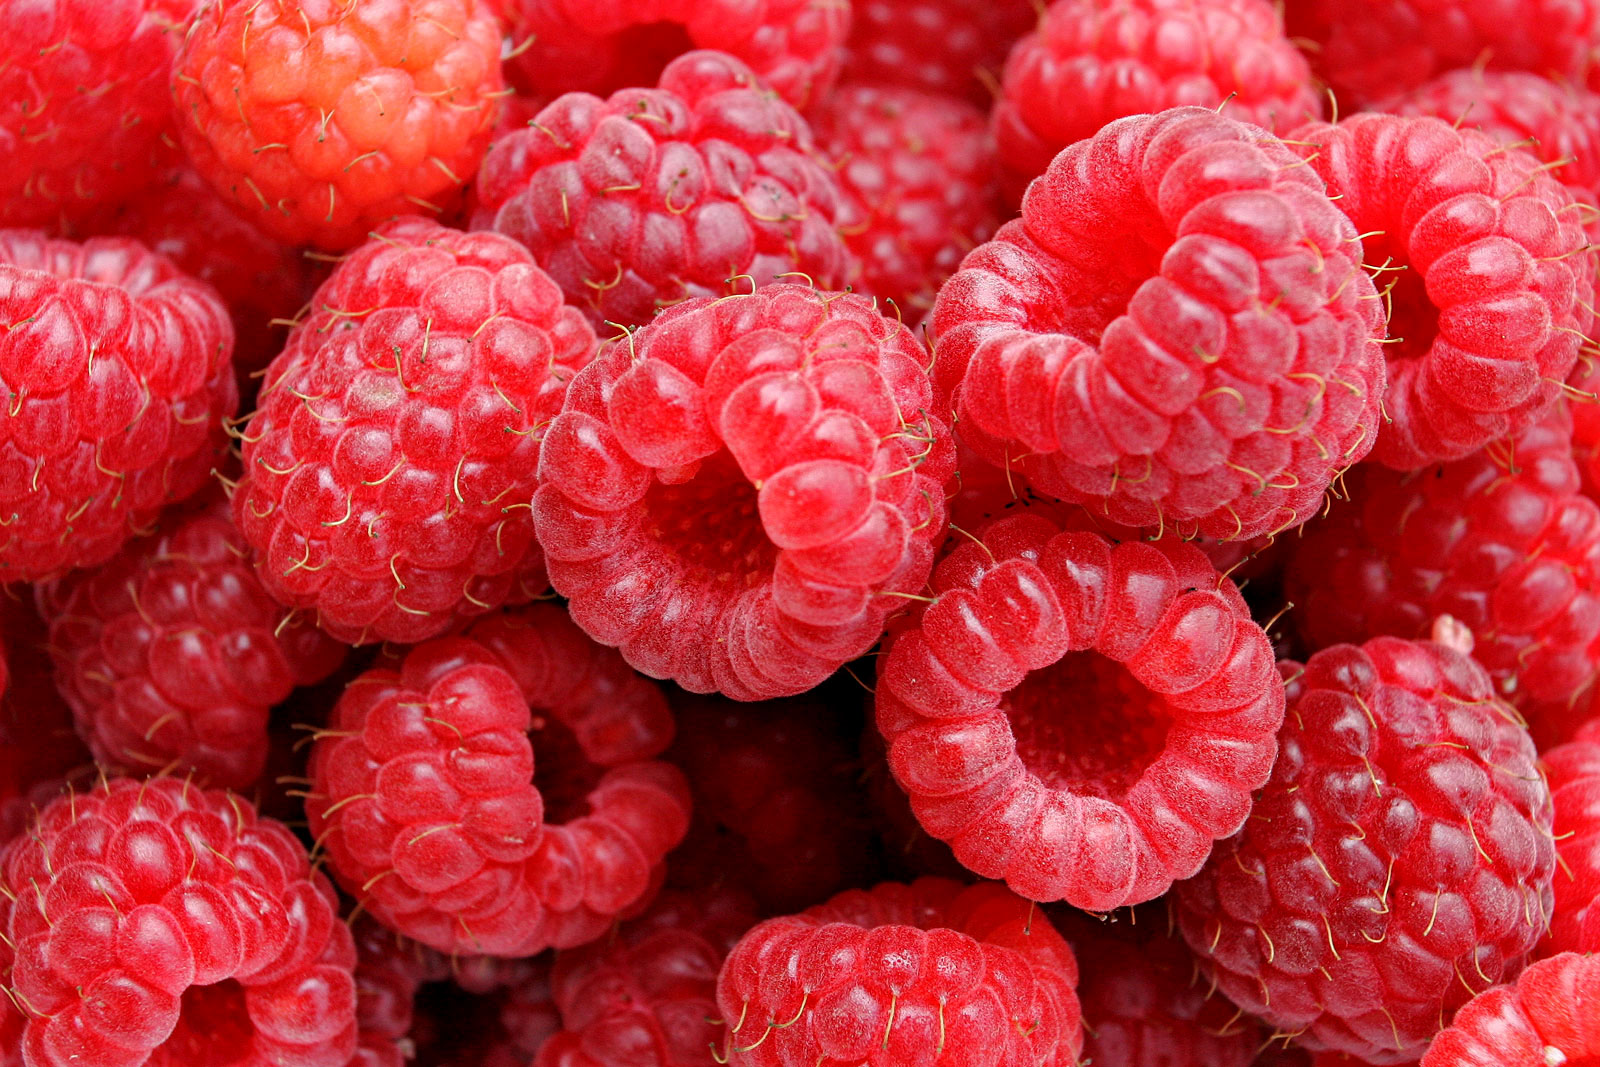 http://upload.wikimedia.org/wikipedia/commons/9/97/Raspberries05_edit.jpg